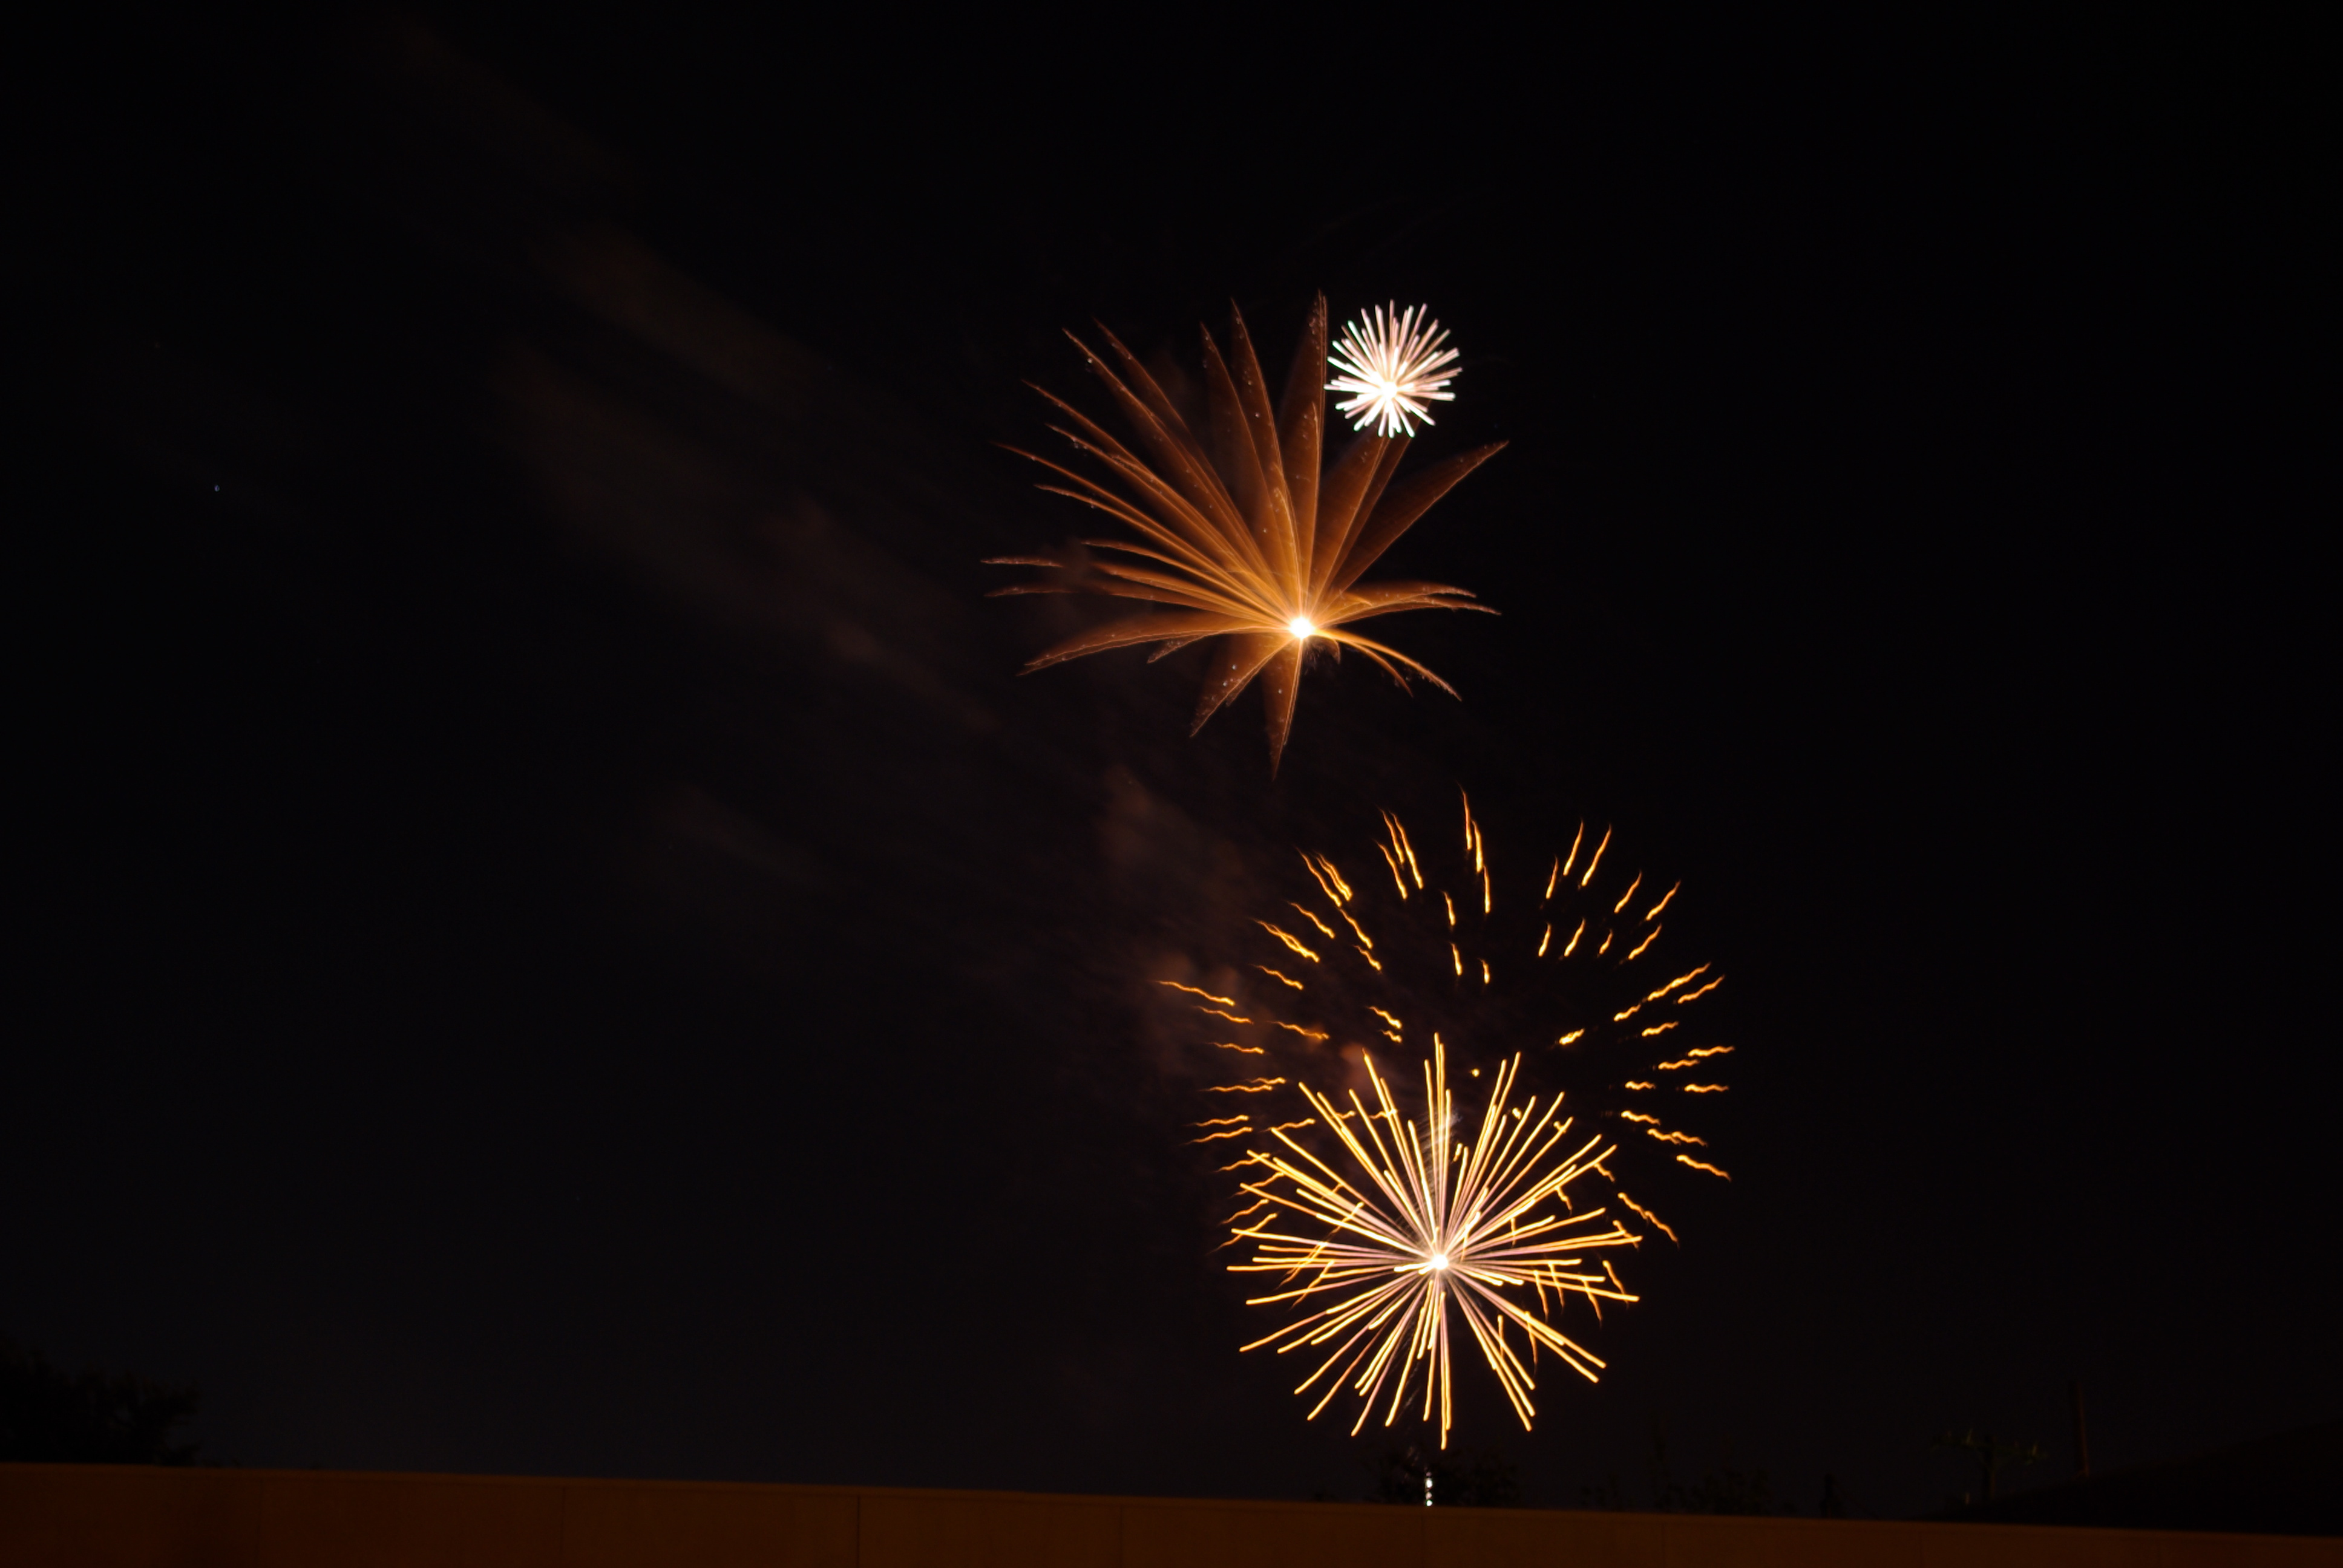 fireworks animation in flash - photo #24